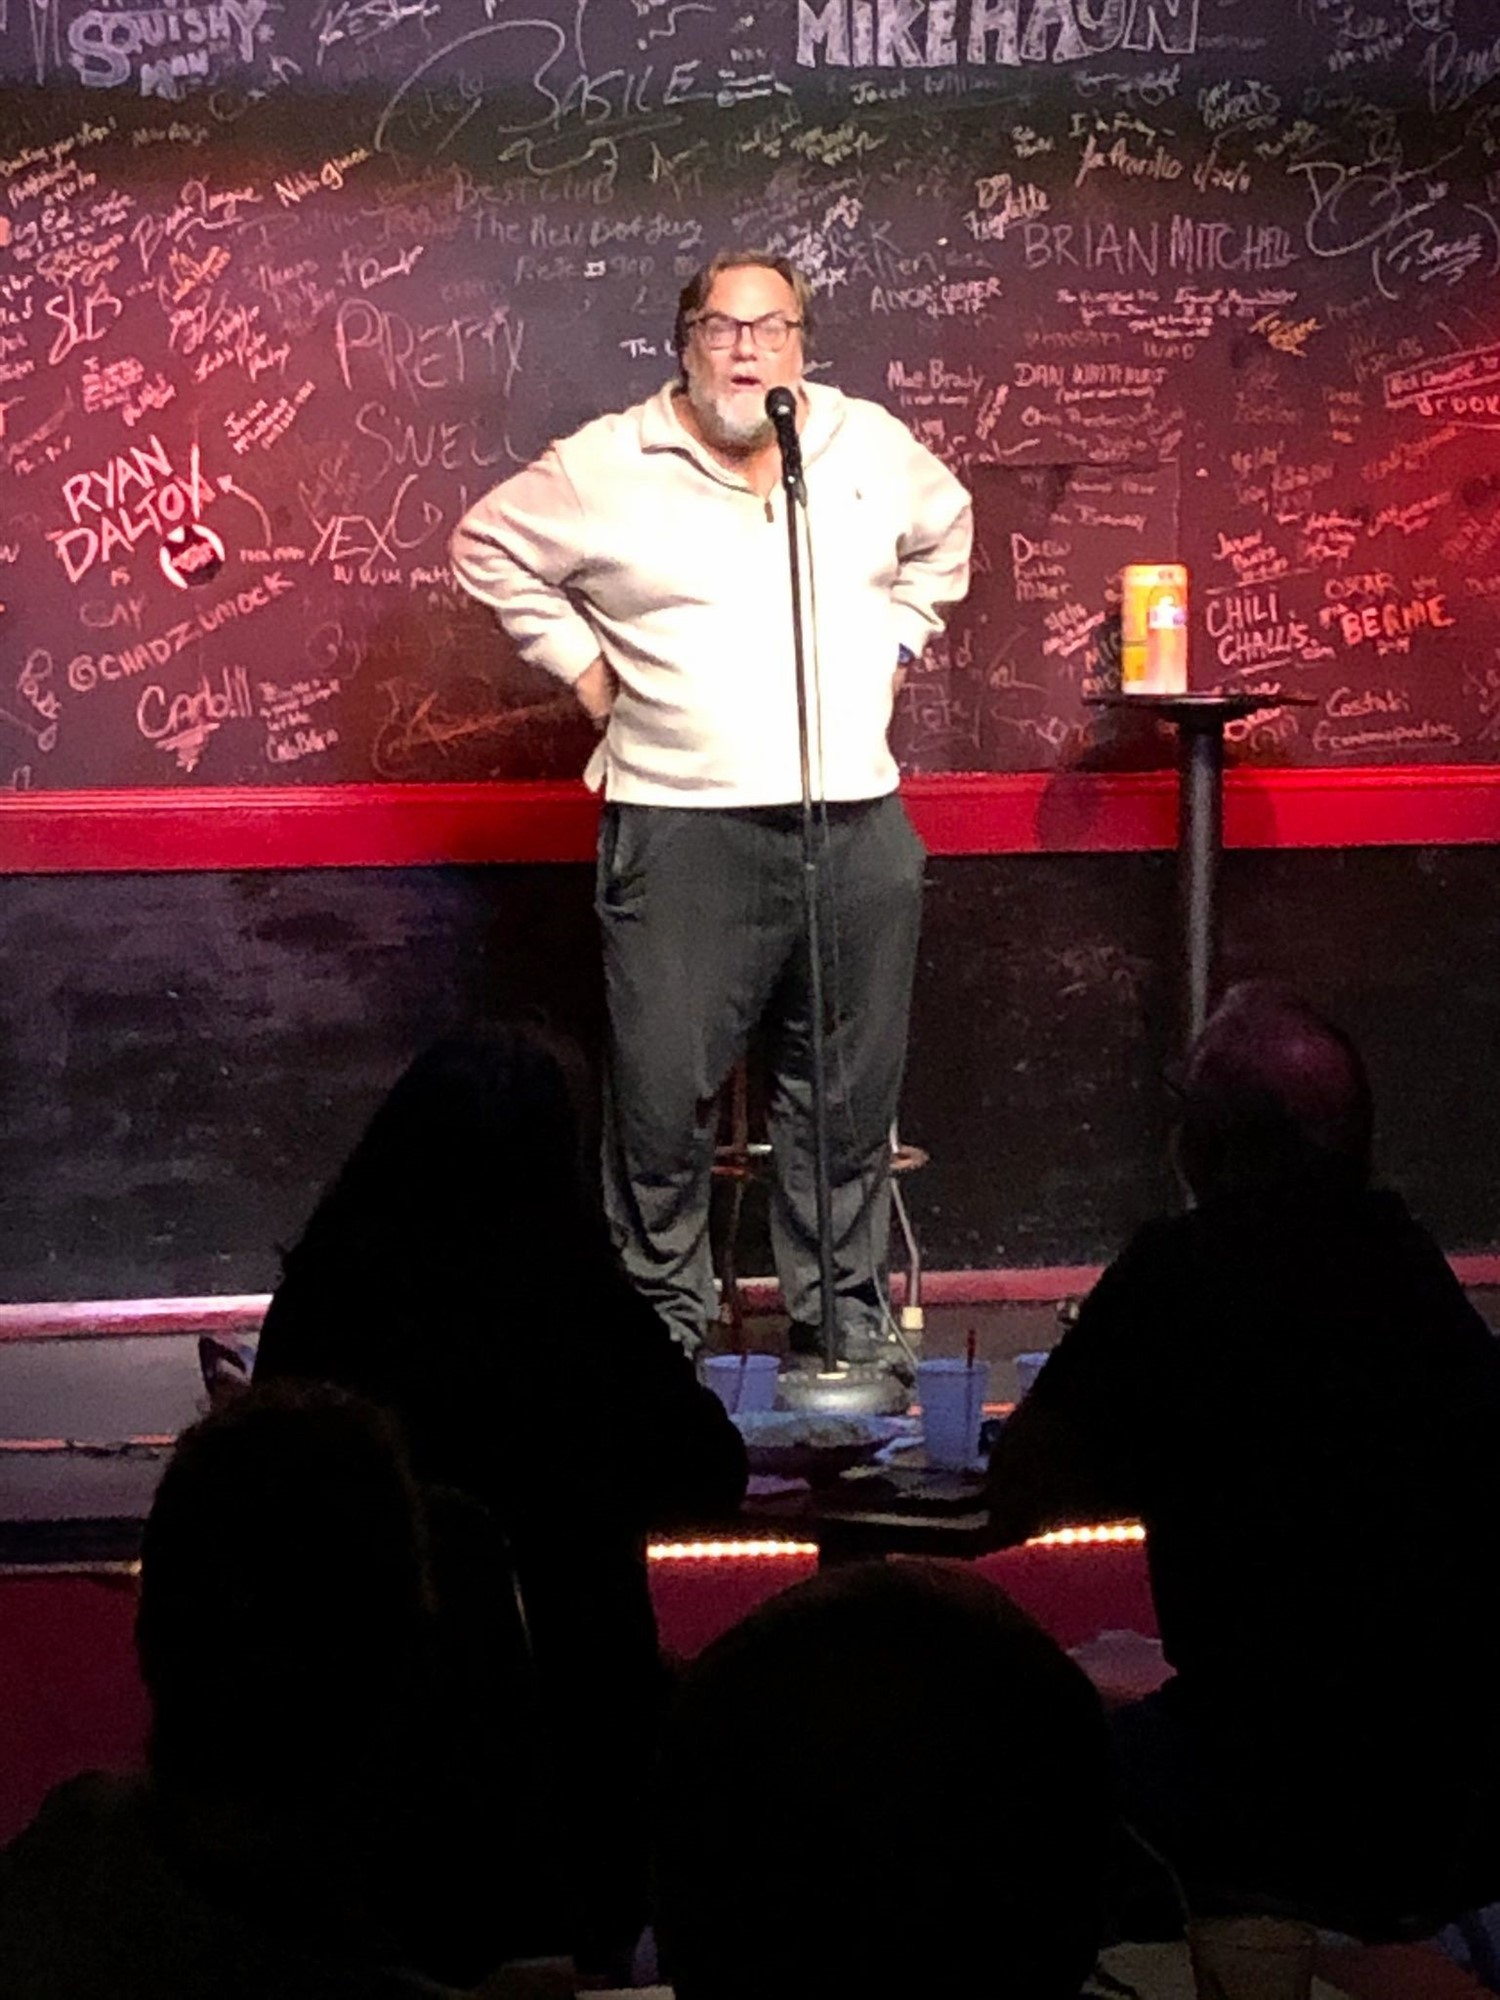 Kevin Farley 6:30 Show Funny Stop Comedy Club on Feb 13, 18:30@Funny Stop Comedy Club - Buy tickets and Get information on Funny Stop funnystop.online